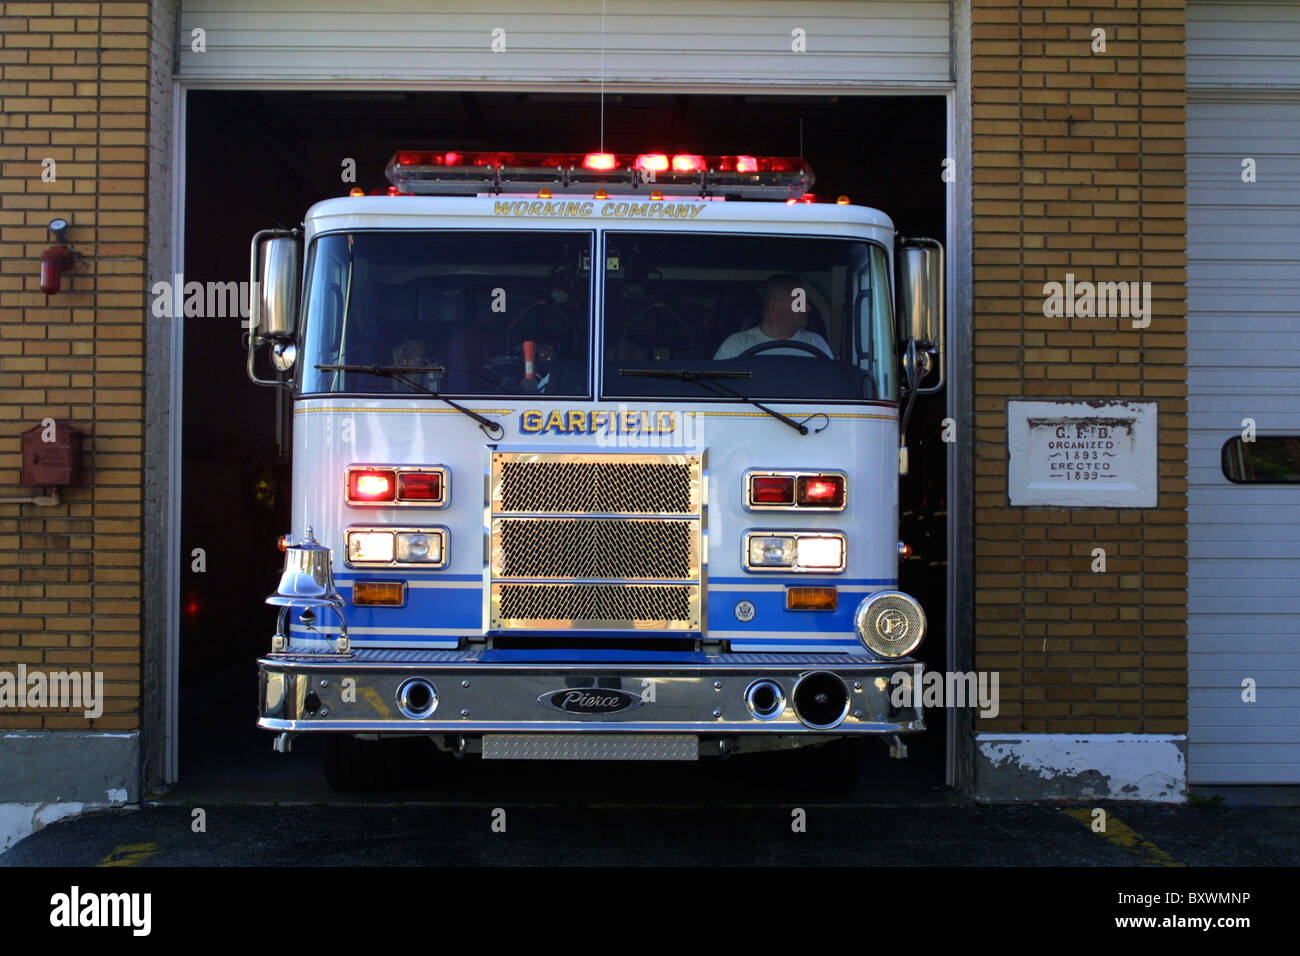 Volunteer Fire Dept High Resolution Stock Photography And Images Alamy